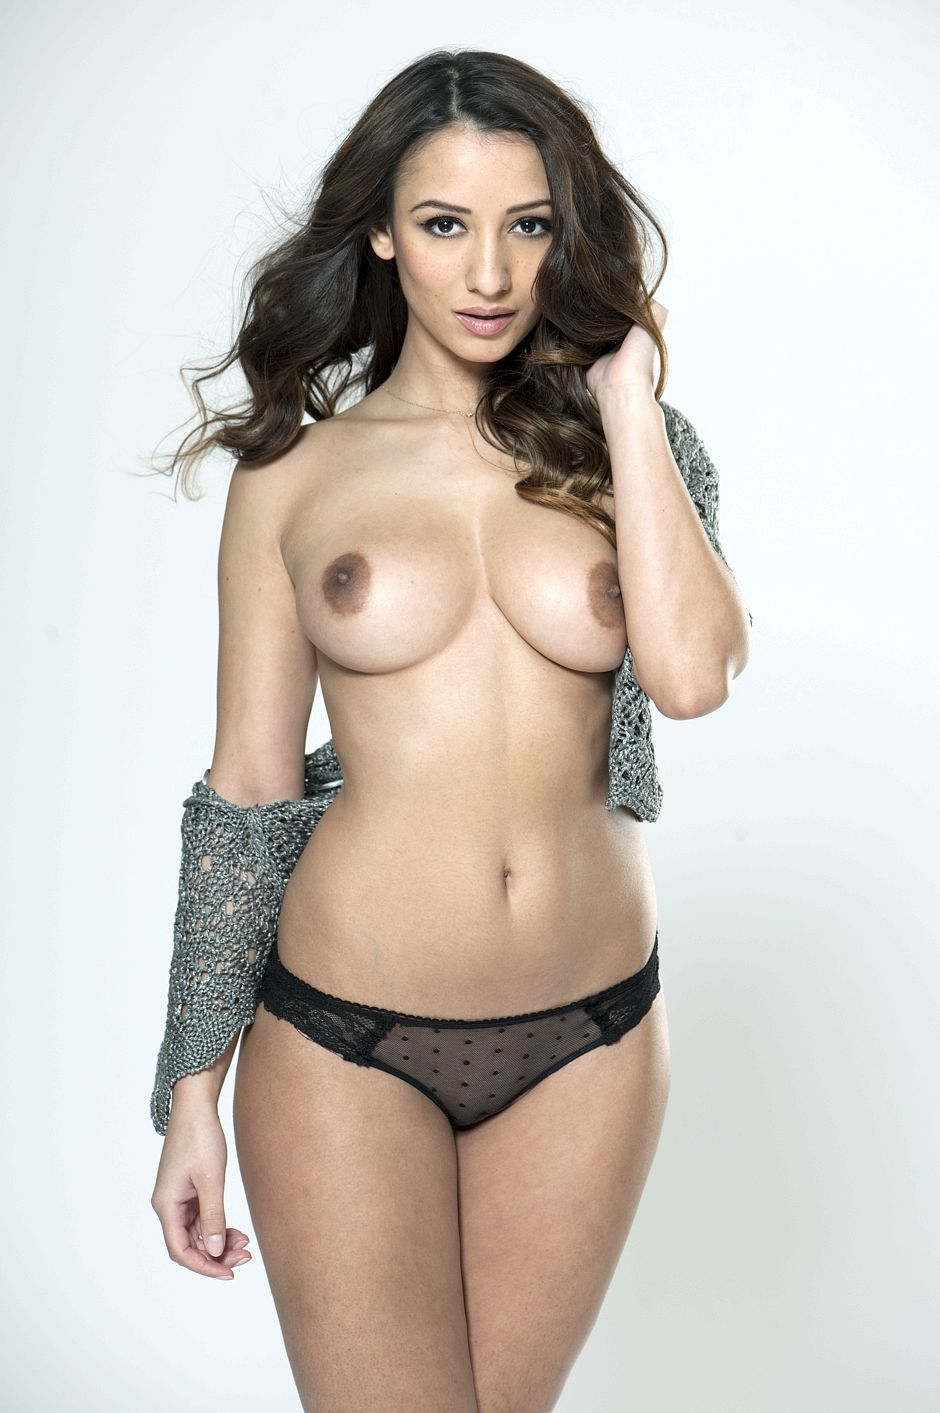 Topless Nicola Paul